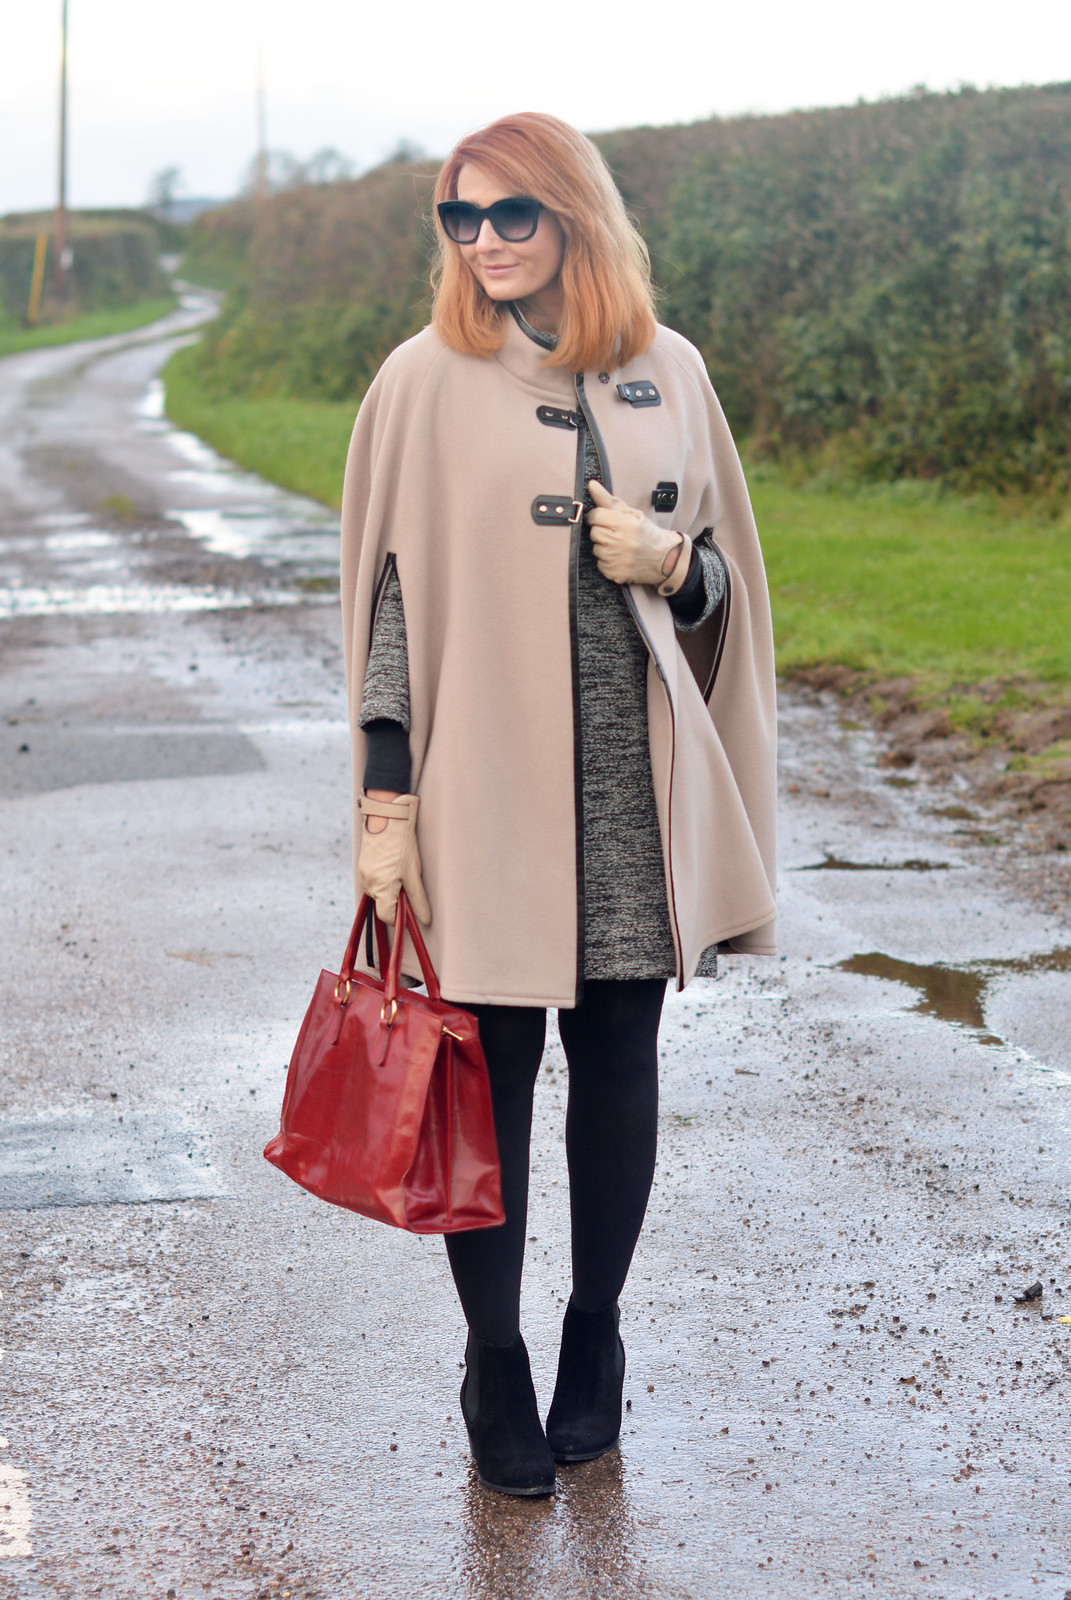 Winter Style   Camel cape, sweater dress, red tote, black tights